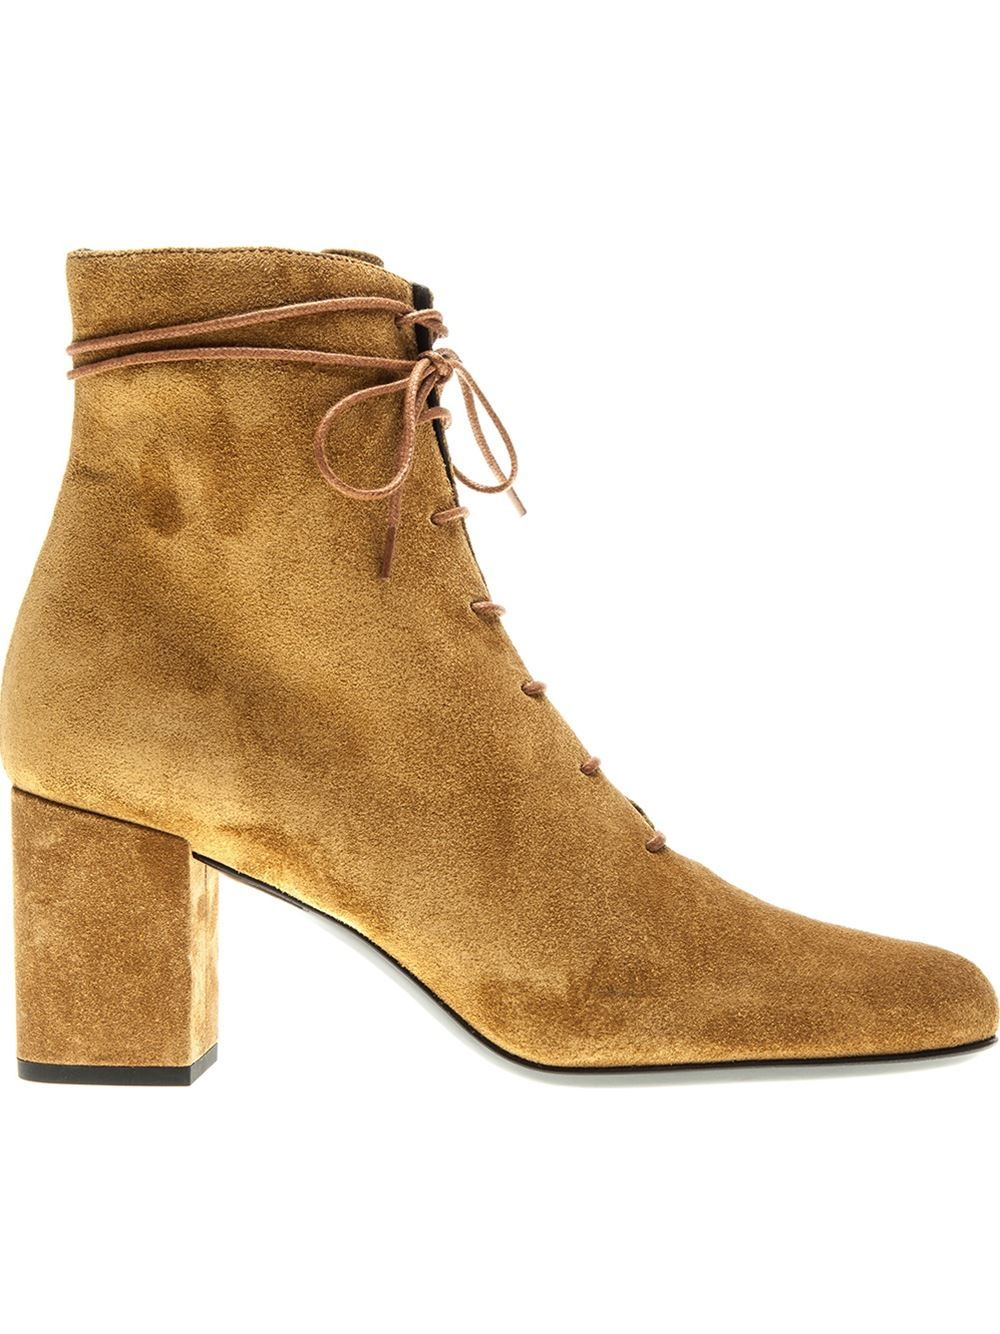 0f0e9135fb4b Saint Laurent suede lace-up ankle boots